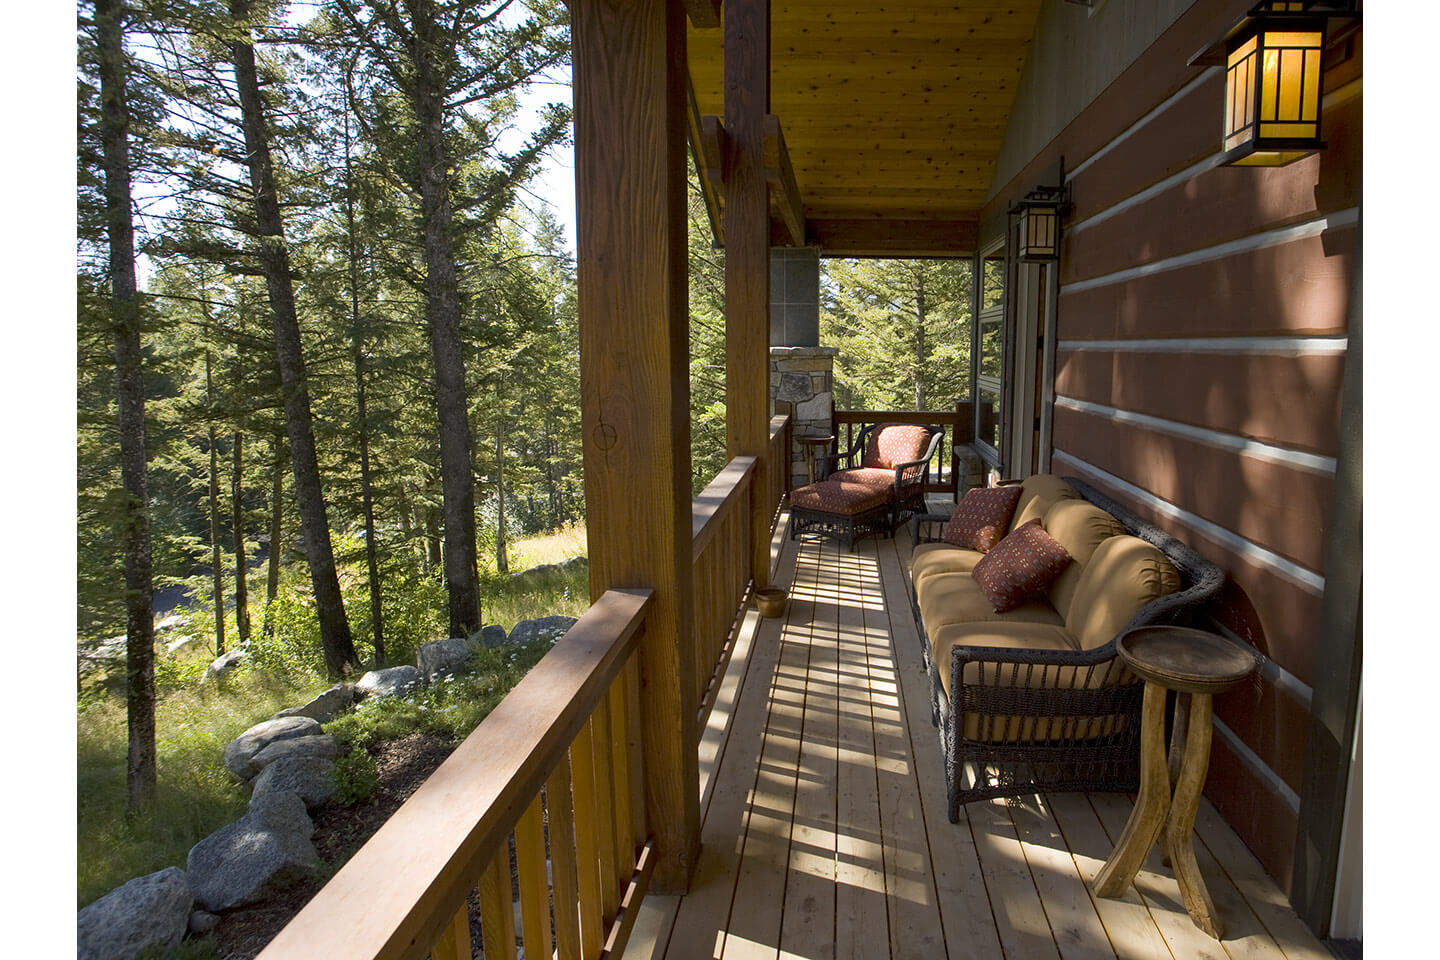 Balcony with view into the forest